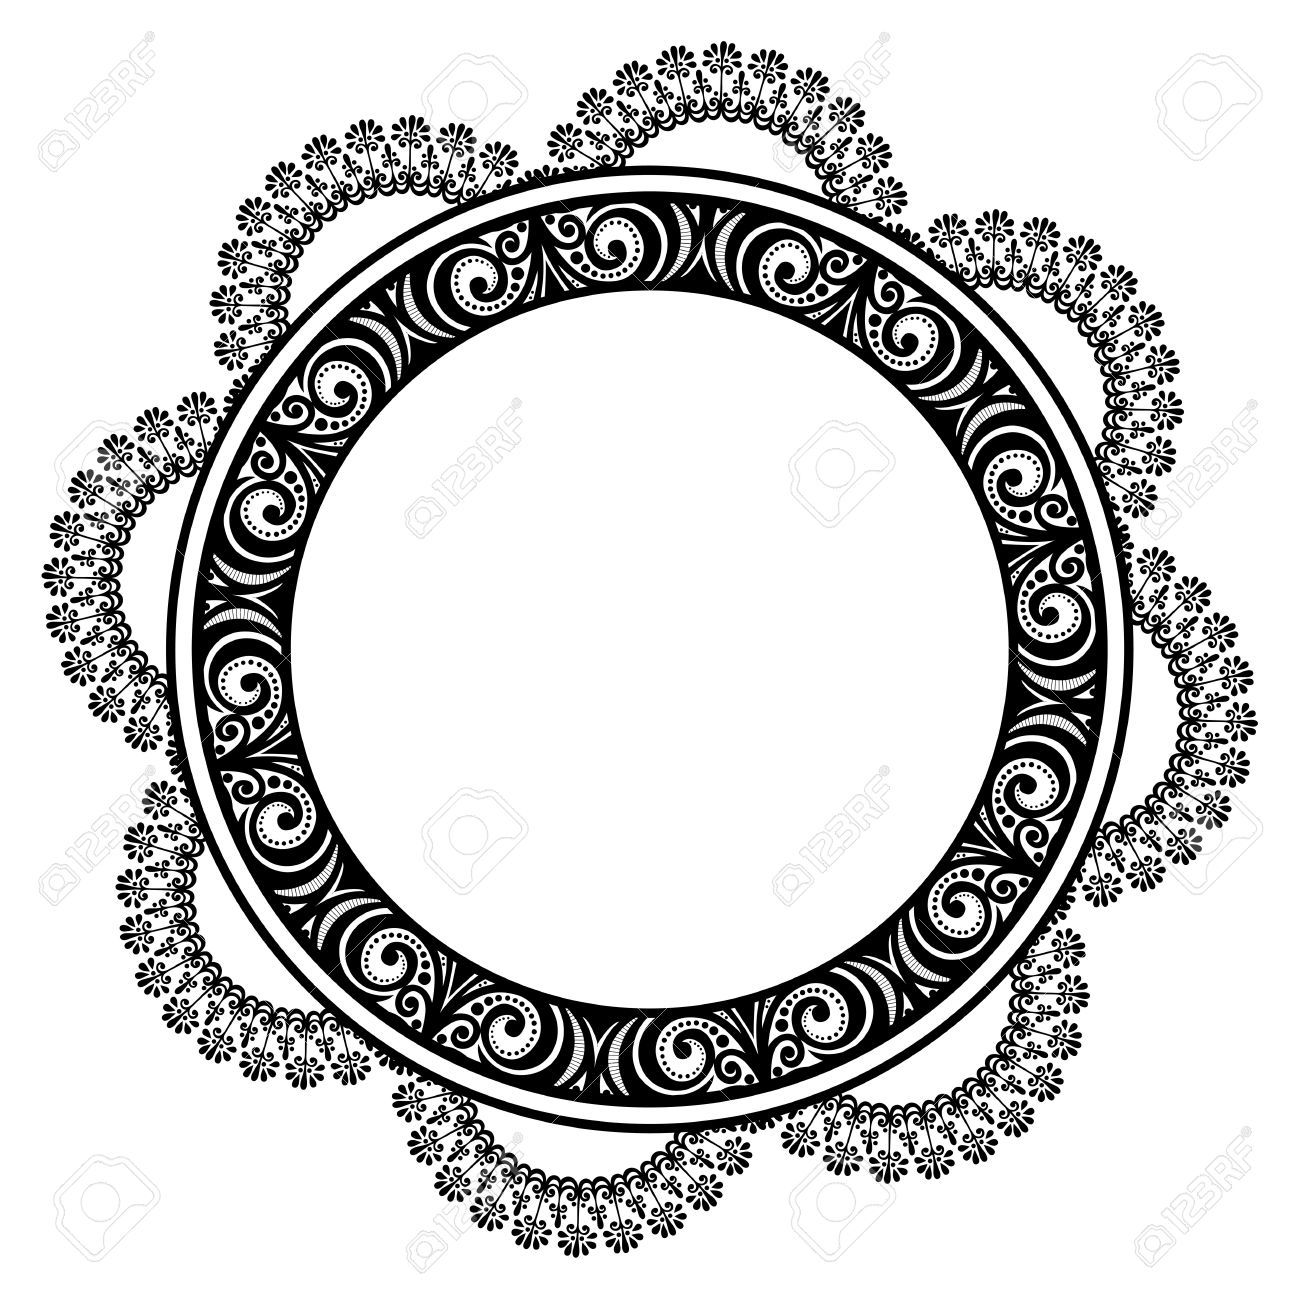 Beautiful Decorative Round Frame Vector Snowflake Patterned Vector Round Frame Frame